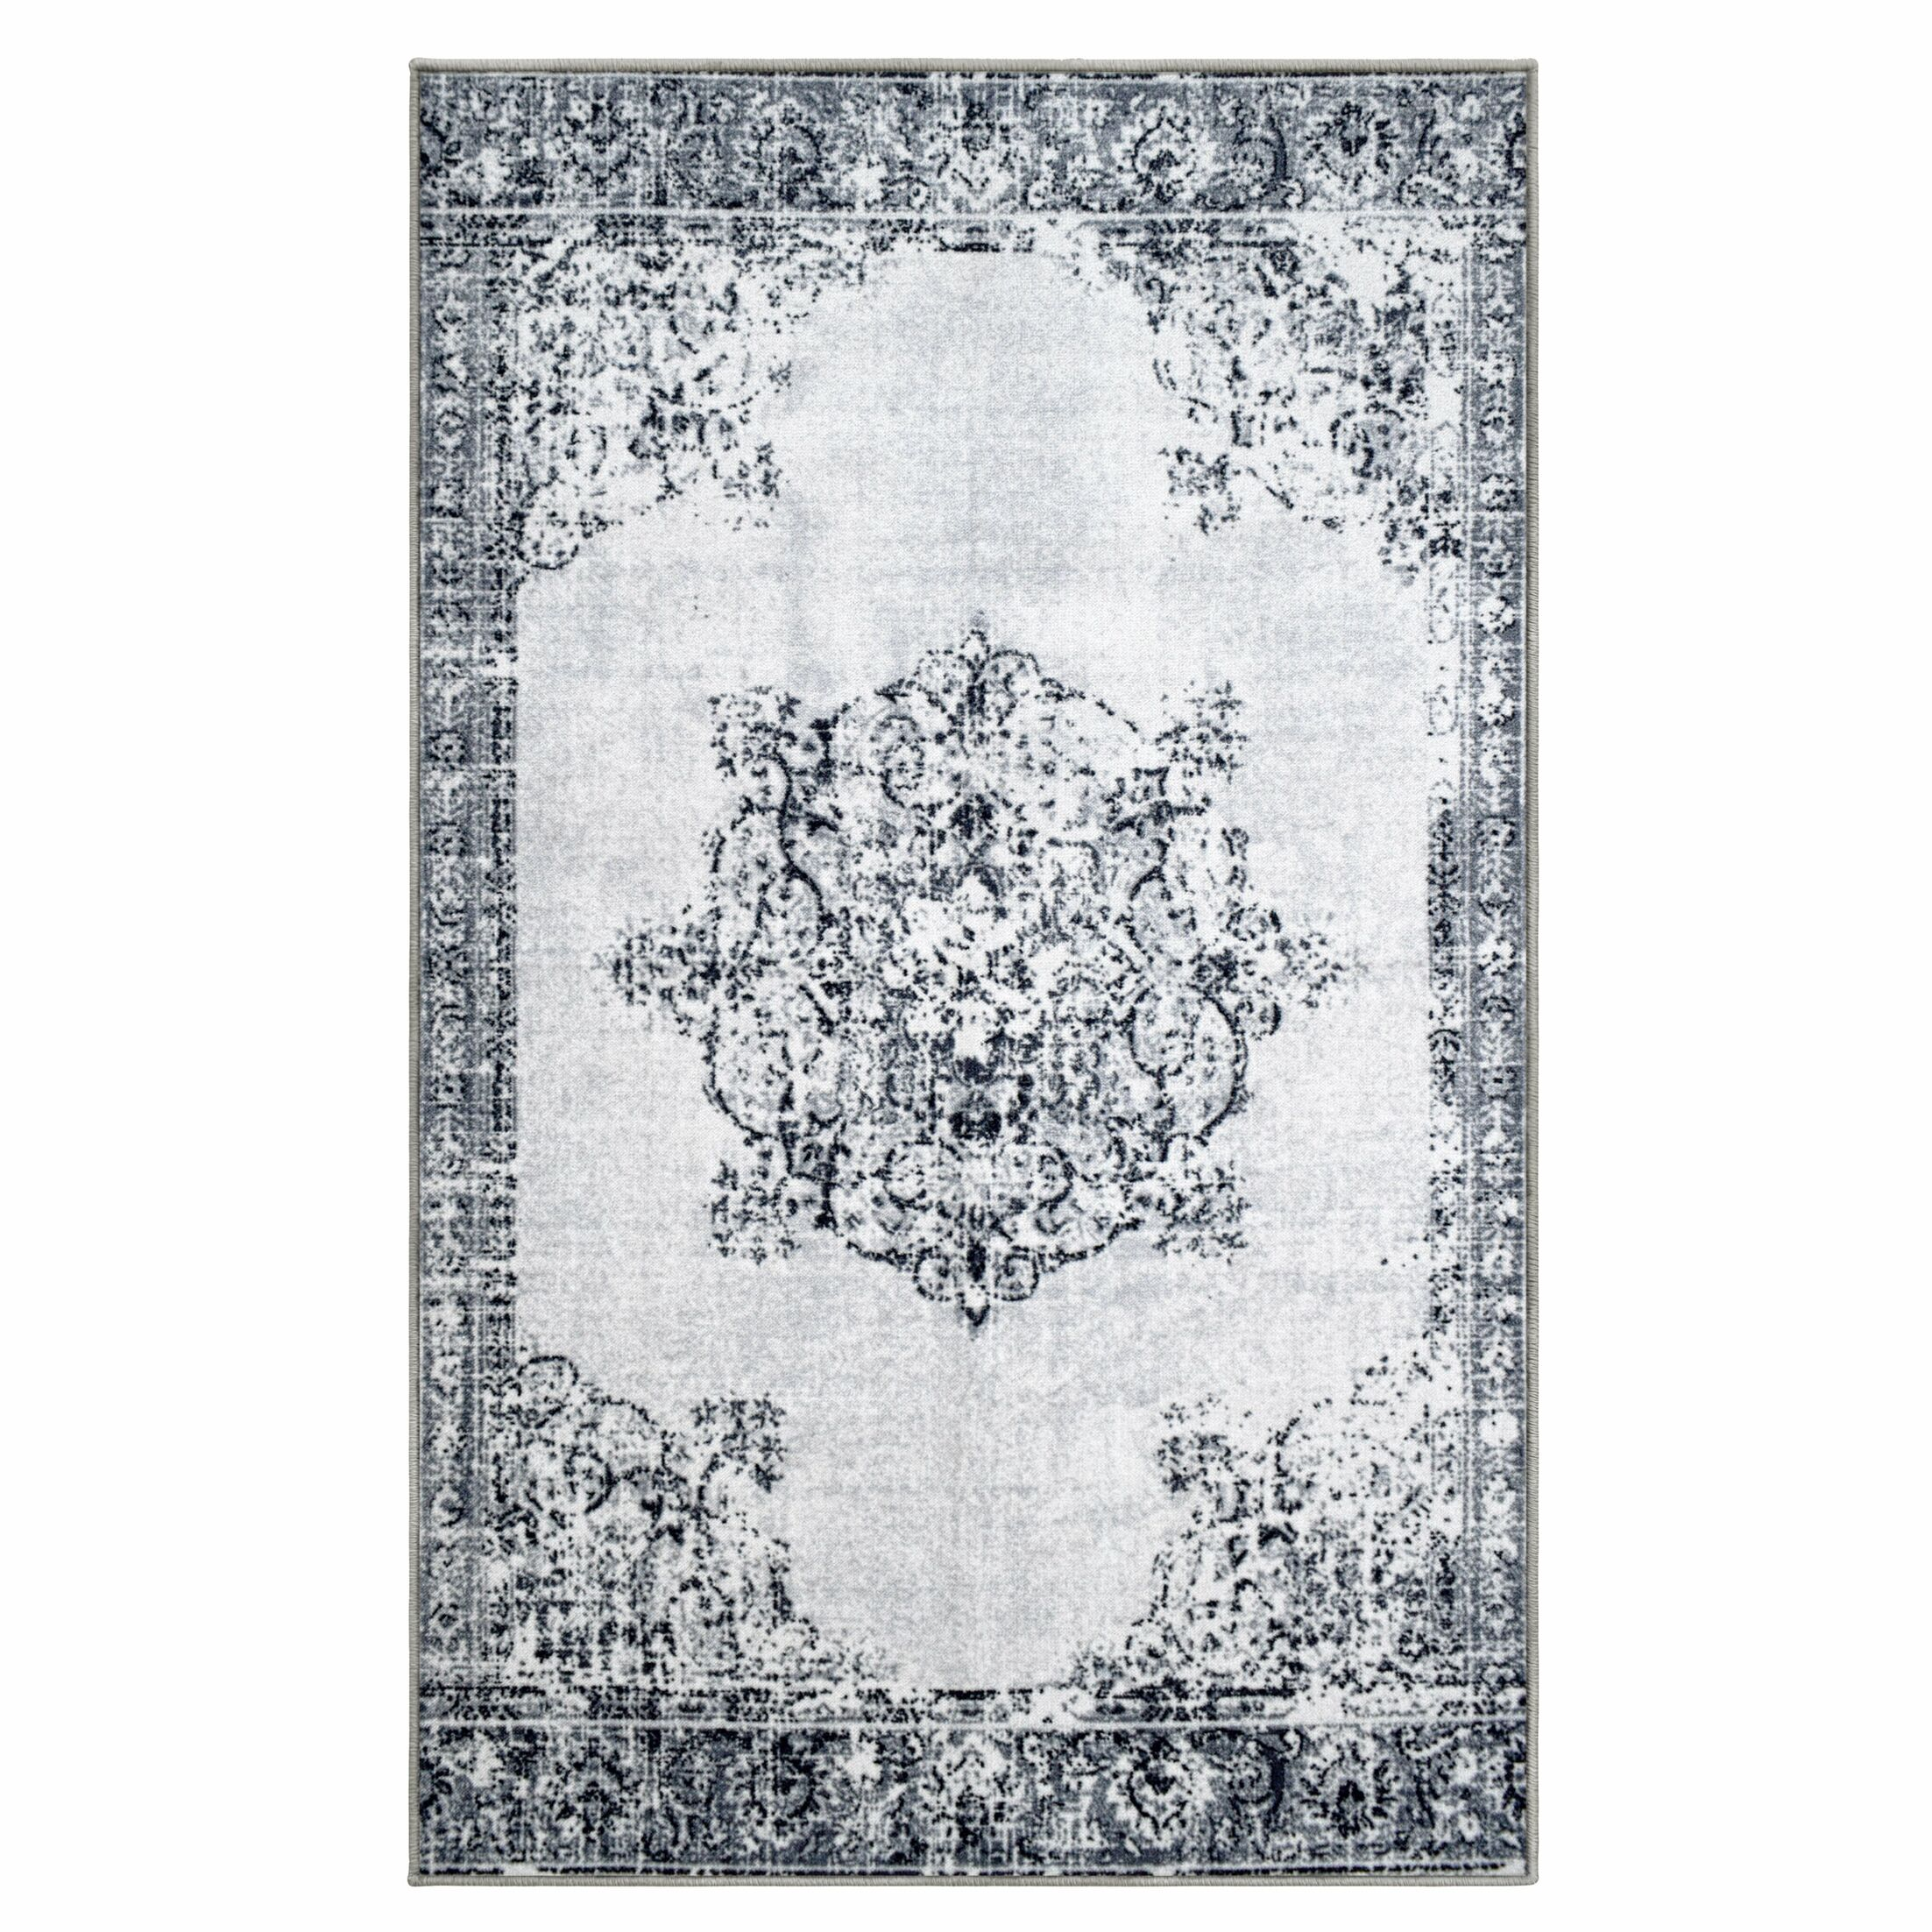 One of Kind Zosia Superior Printed Non-Slip Synthetic Gray Area Rug Rug Size: Rectangle 8' x 10'